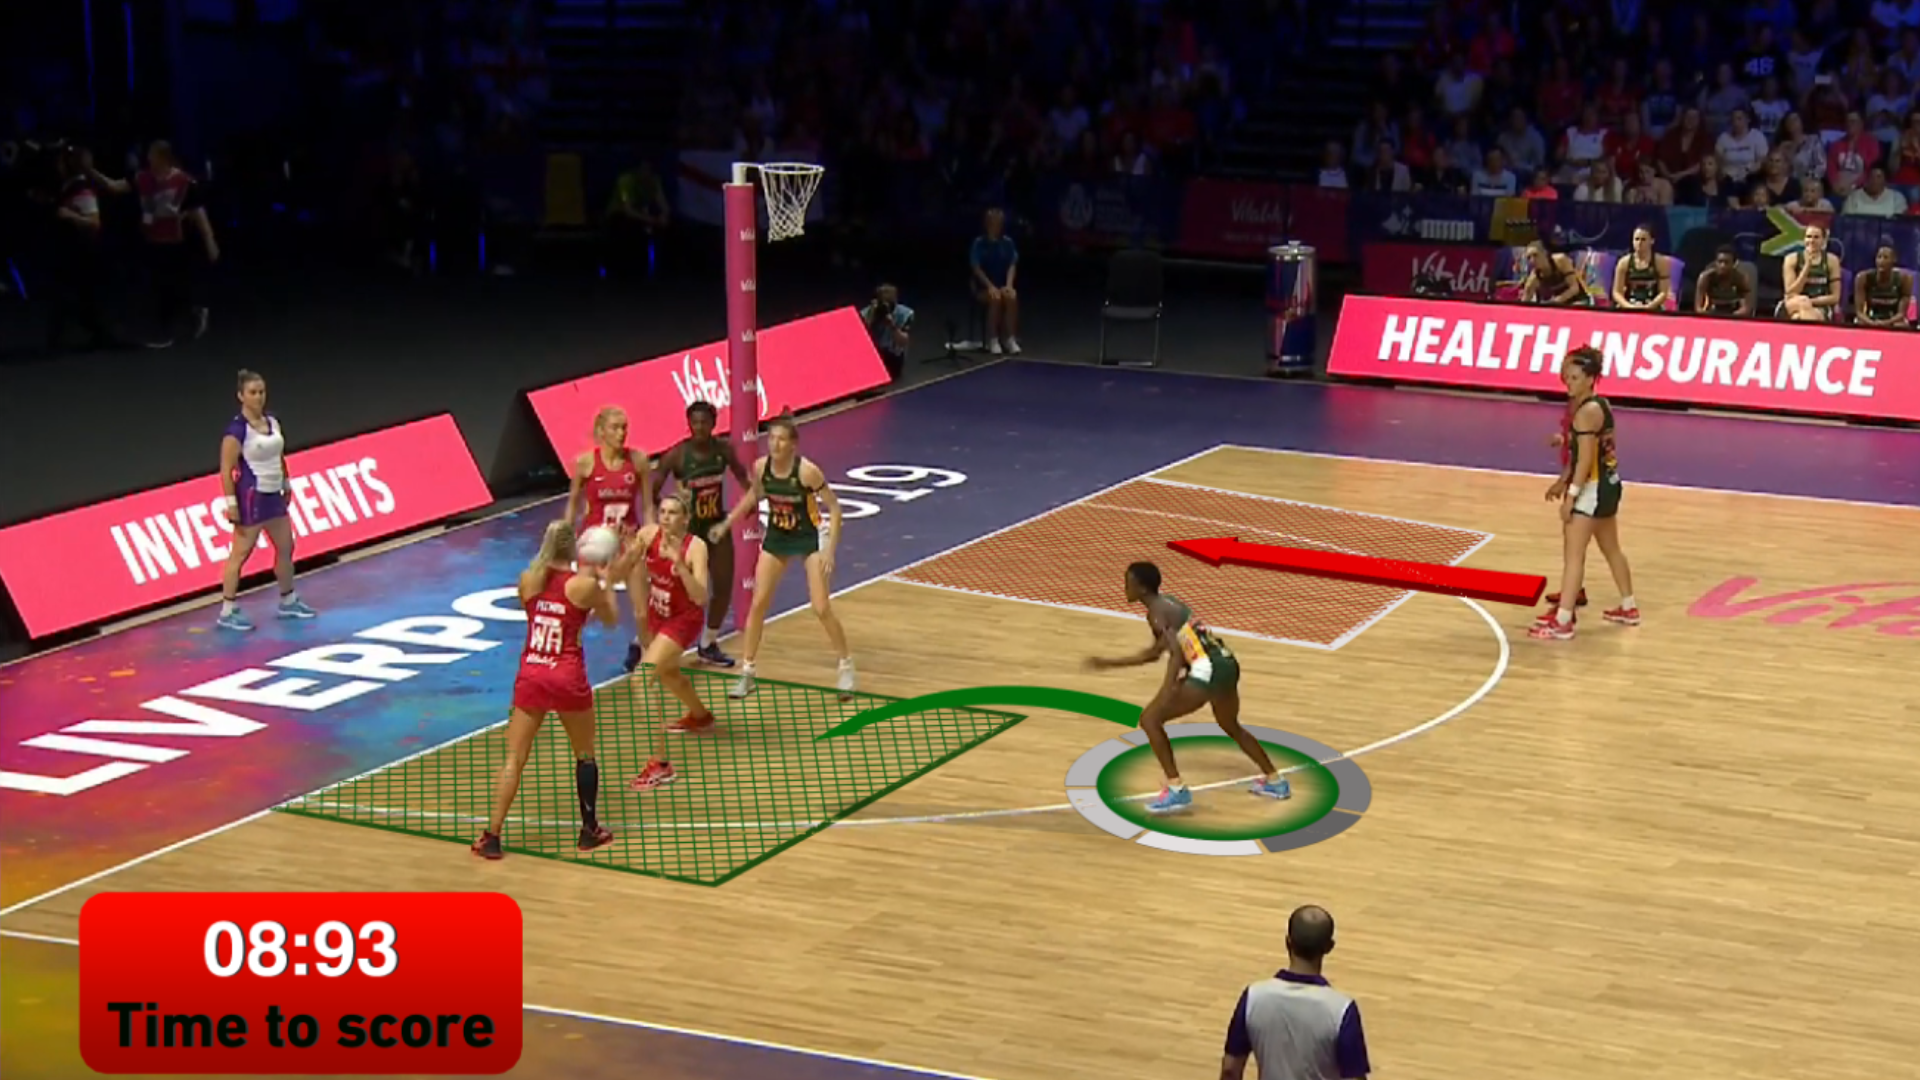 Netball - Sport Video Analysis